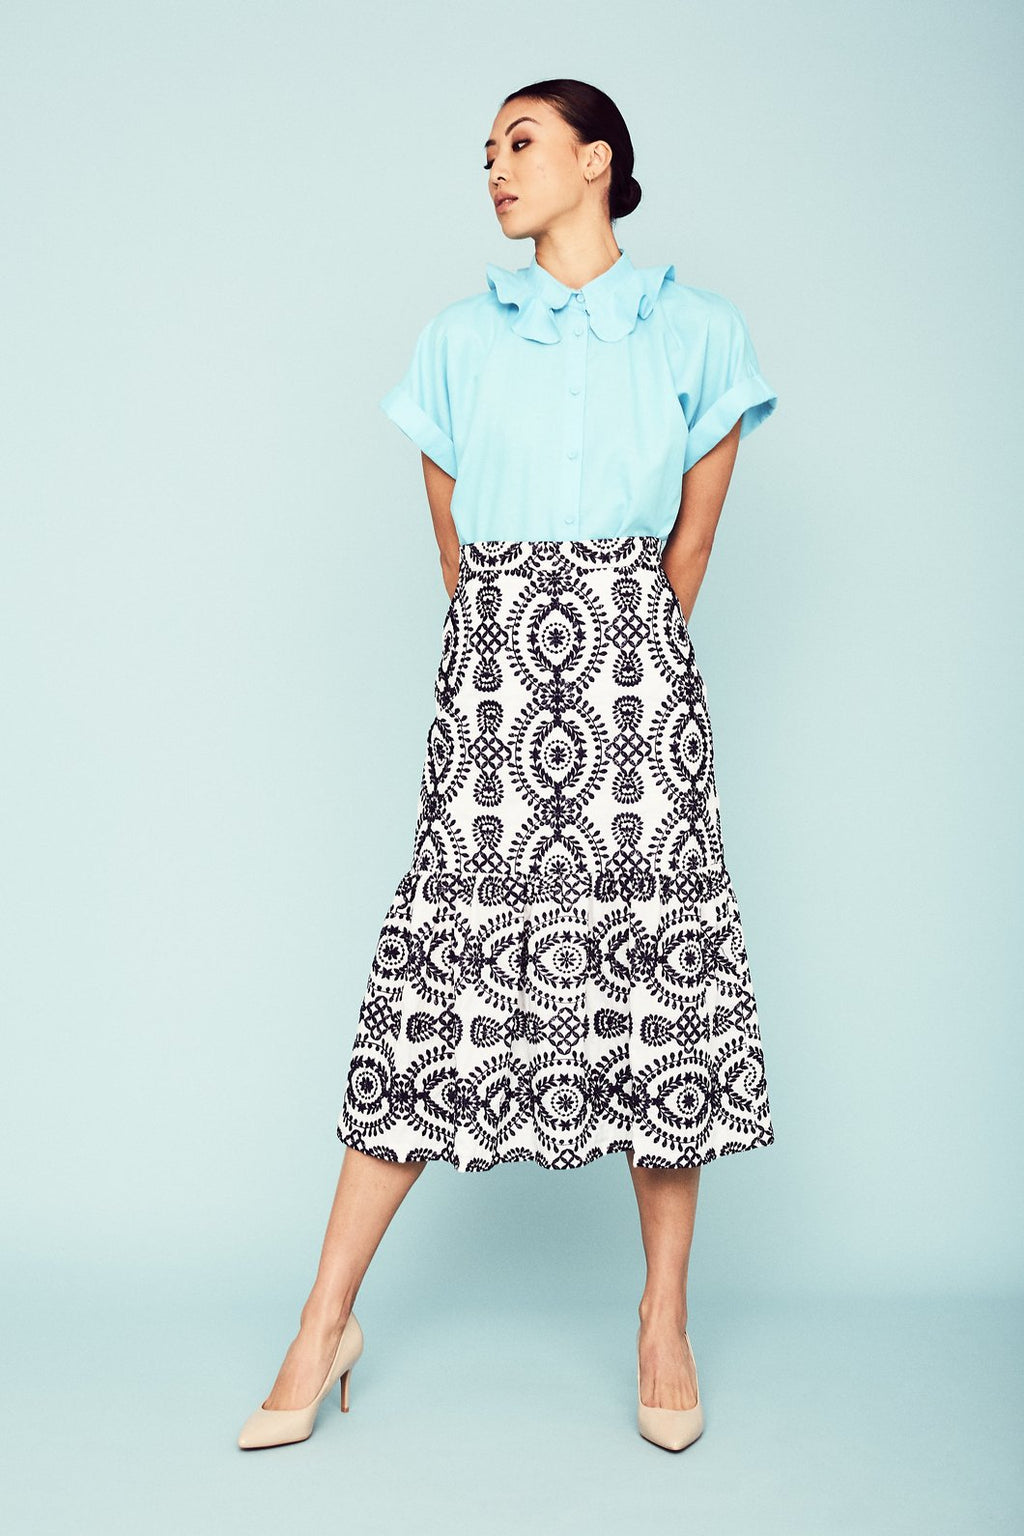 Agnes Skirt Skirts Ethical Sustainable Vegan Organic Australian fashion womens clothes